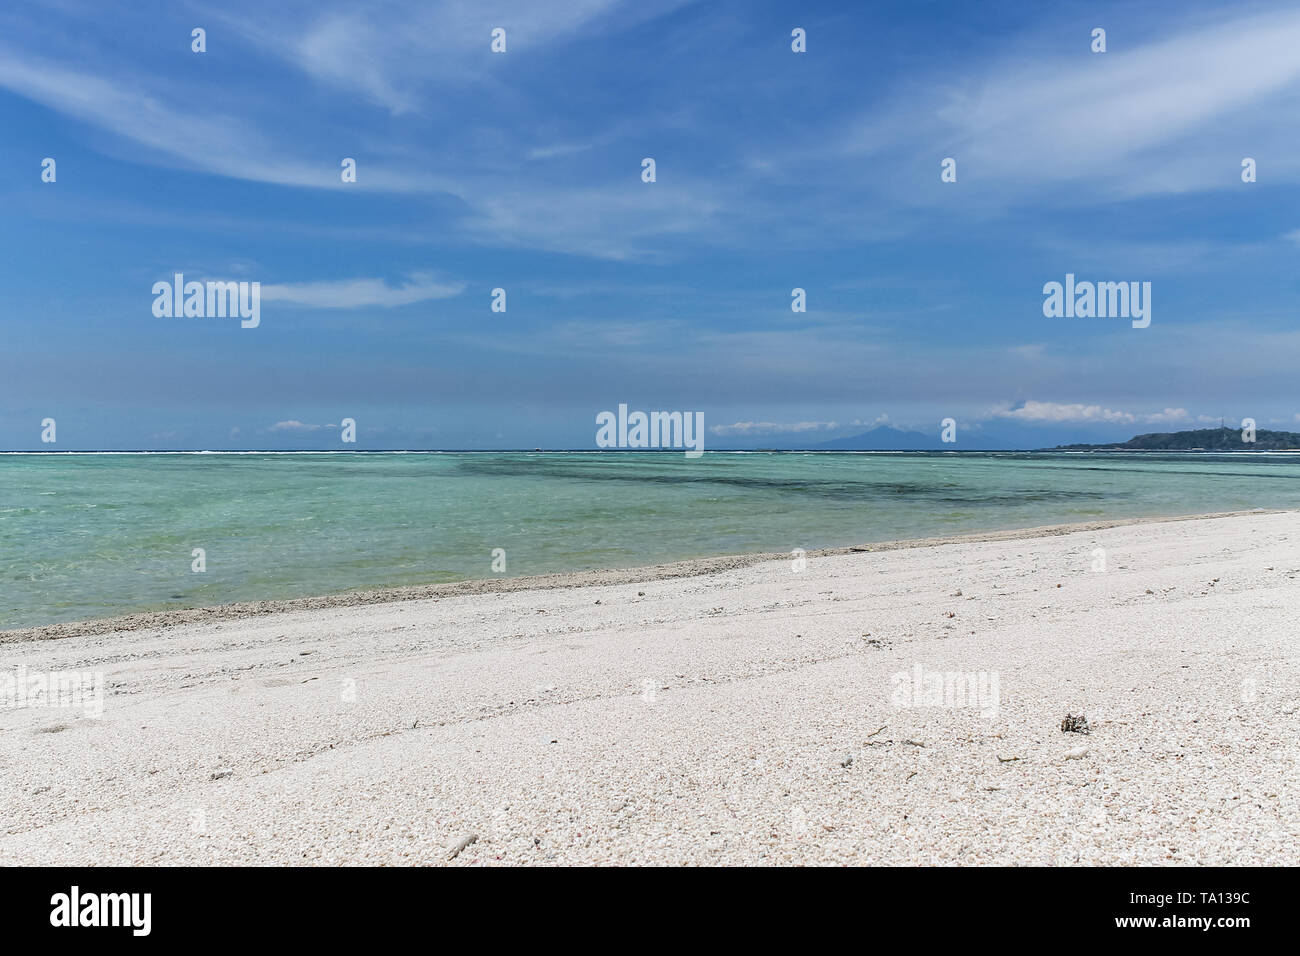 GILI AIR, INDONESIA - December 01, 2013: Pristine Waters and a white Sandy Beach on Gili Air. One of the three popular Gili Islands near Lombok. - Stock Image